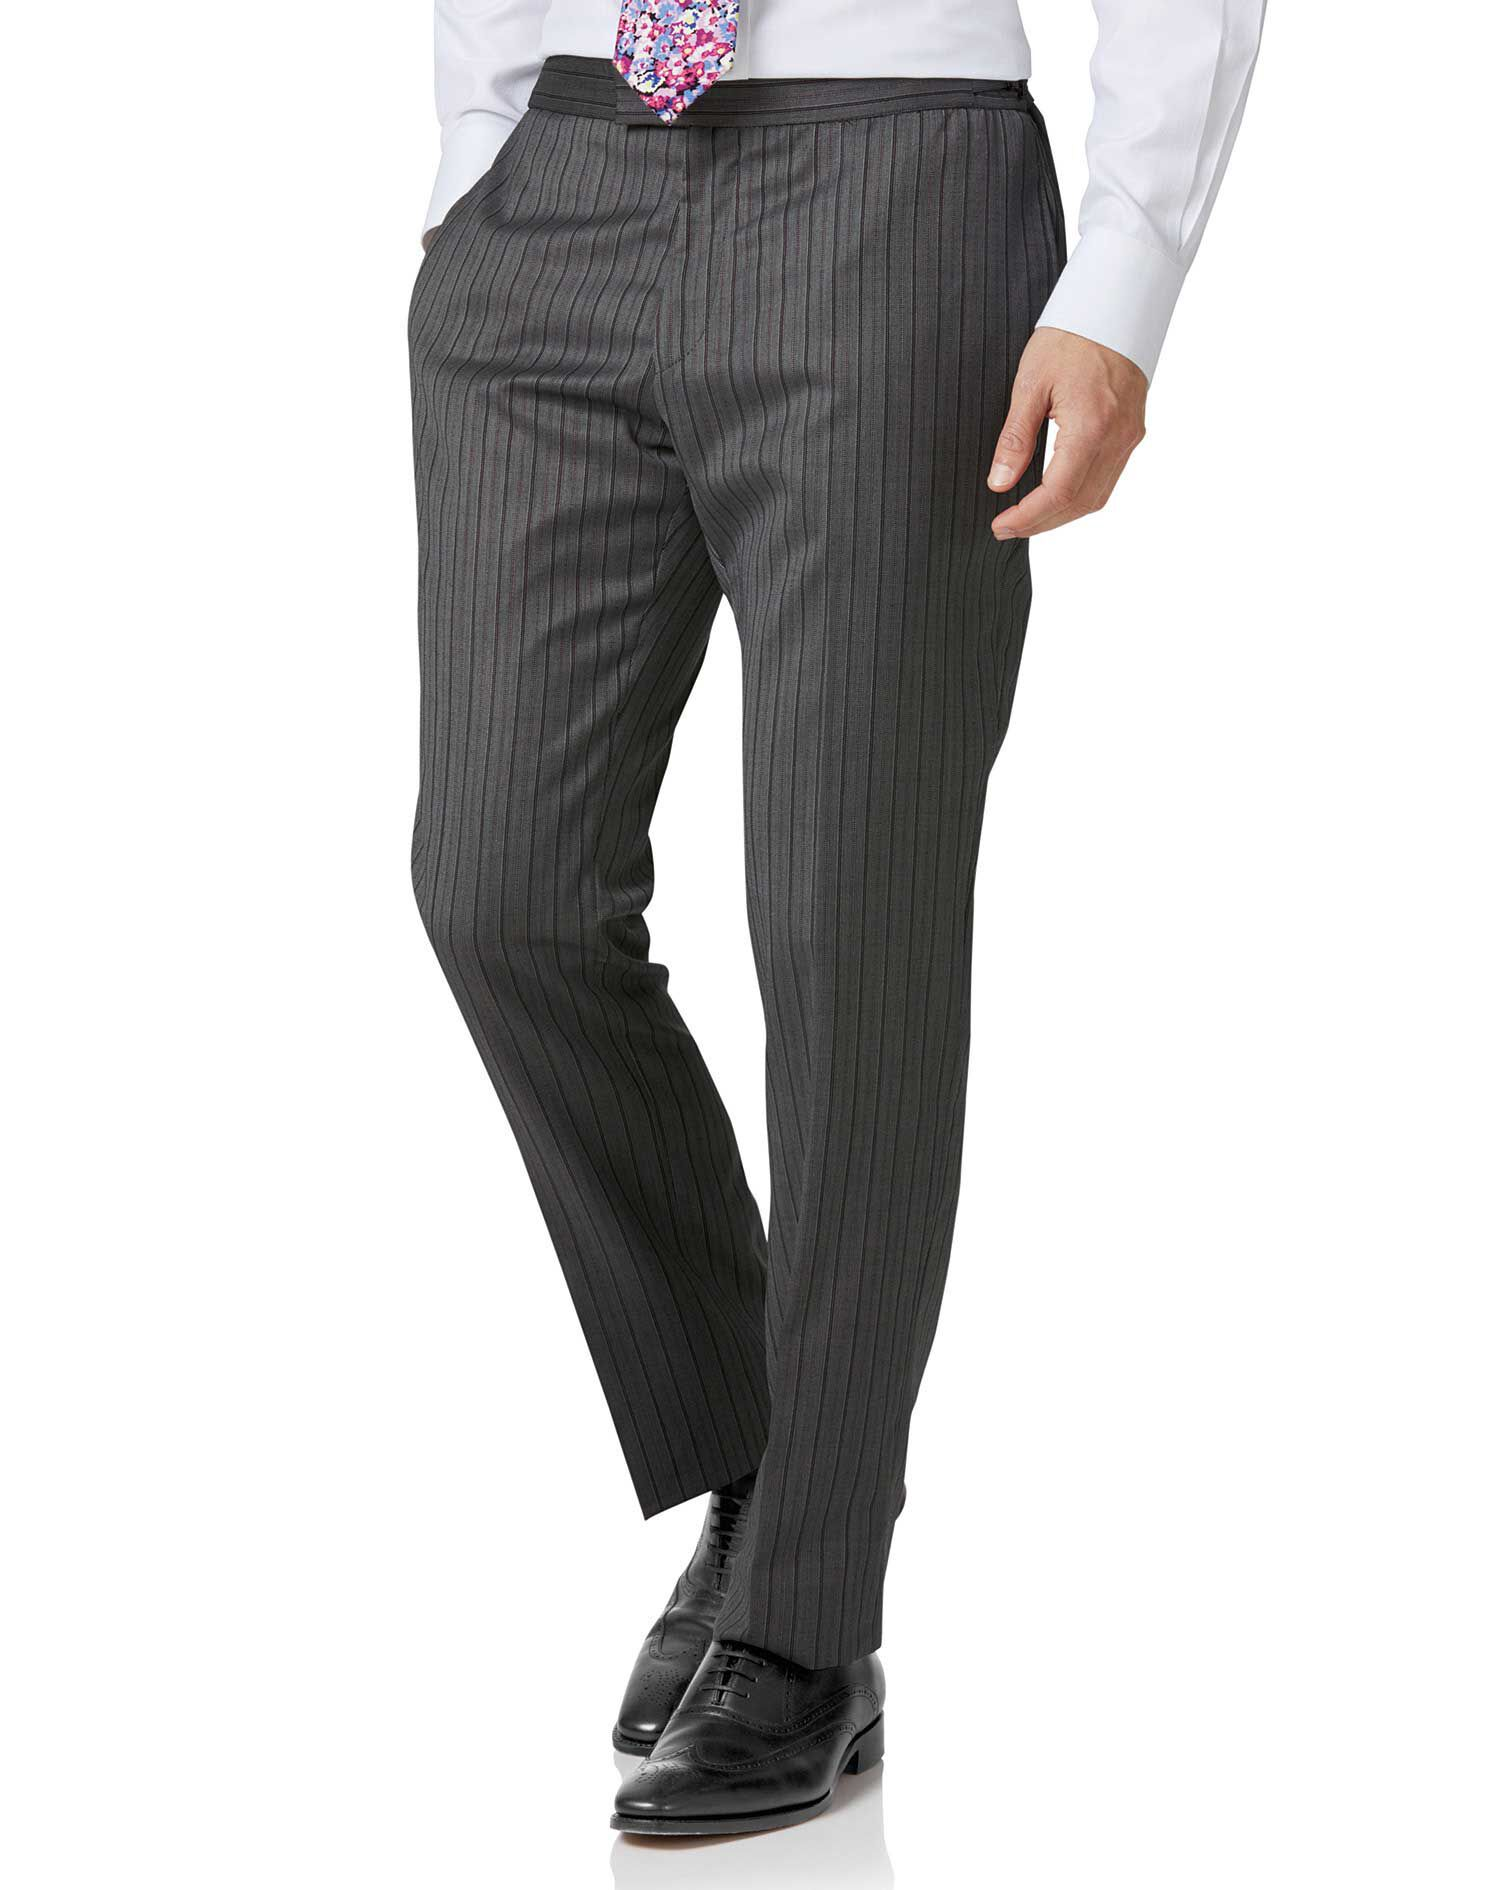 Victorian Men's Clothing Charles Tyrwhitt Charcoal slim fit morning suit trousers £120.00 AT vintagedancer.com